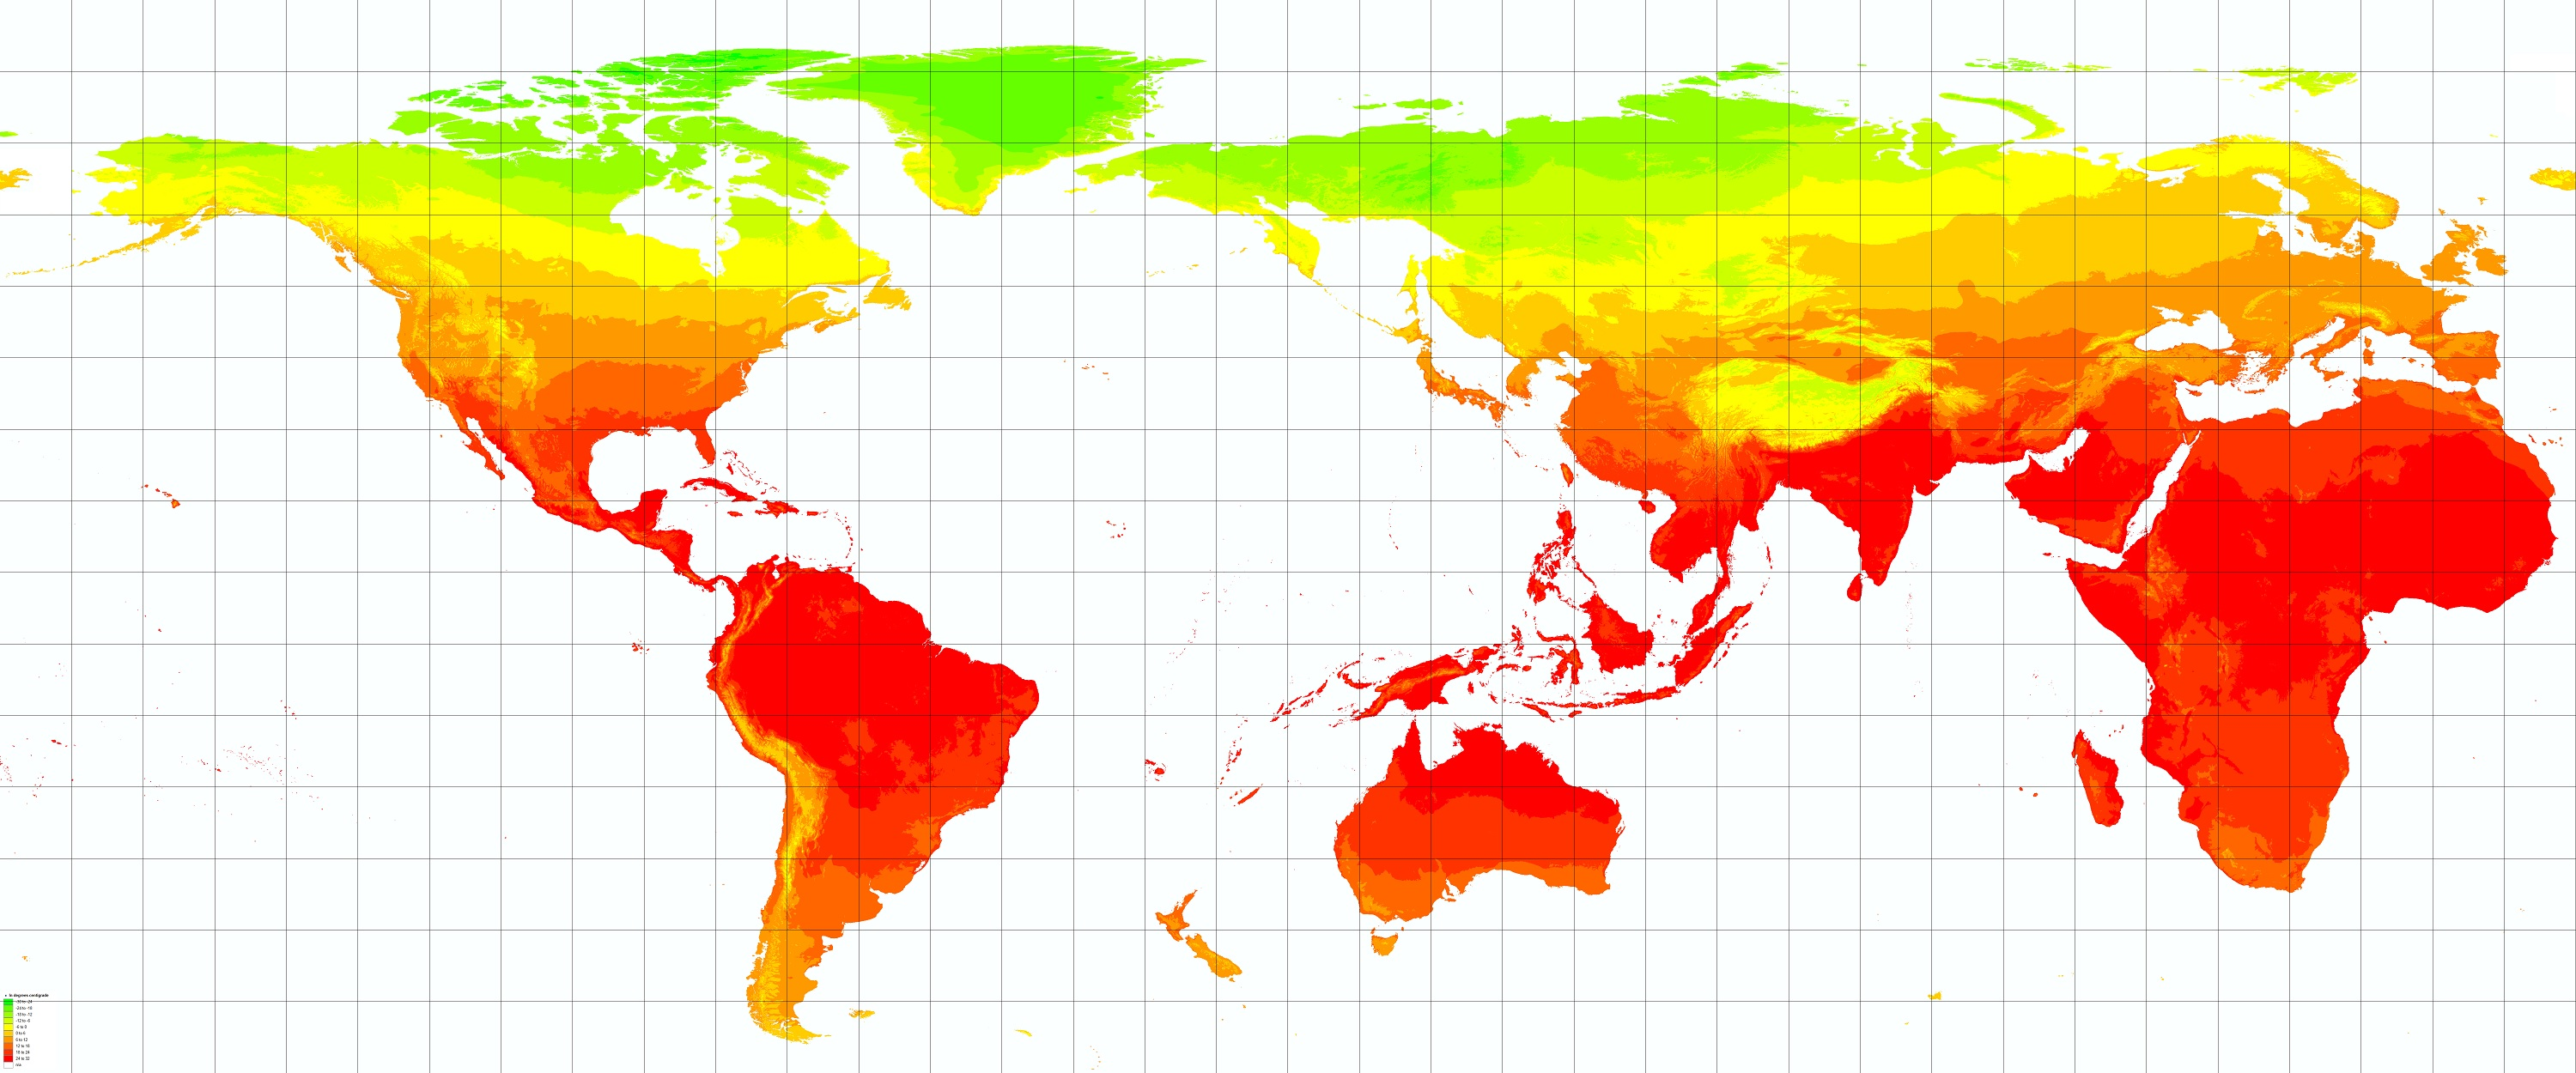 Asia in western europe in eastern climate snowy hot warm asia in western europe in eastern world map reverseg gumiabroncs Image collections